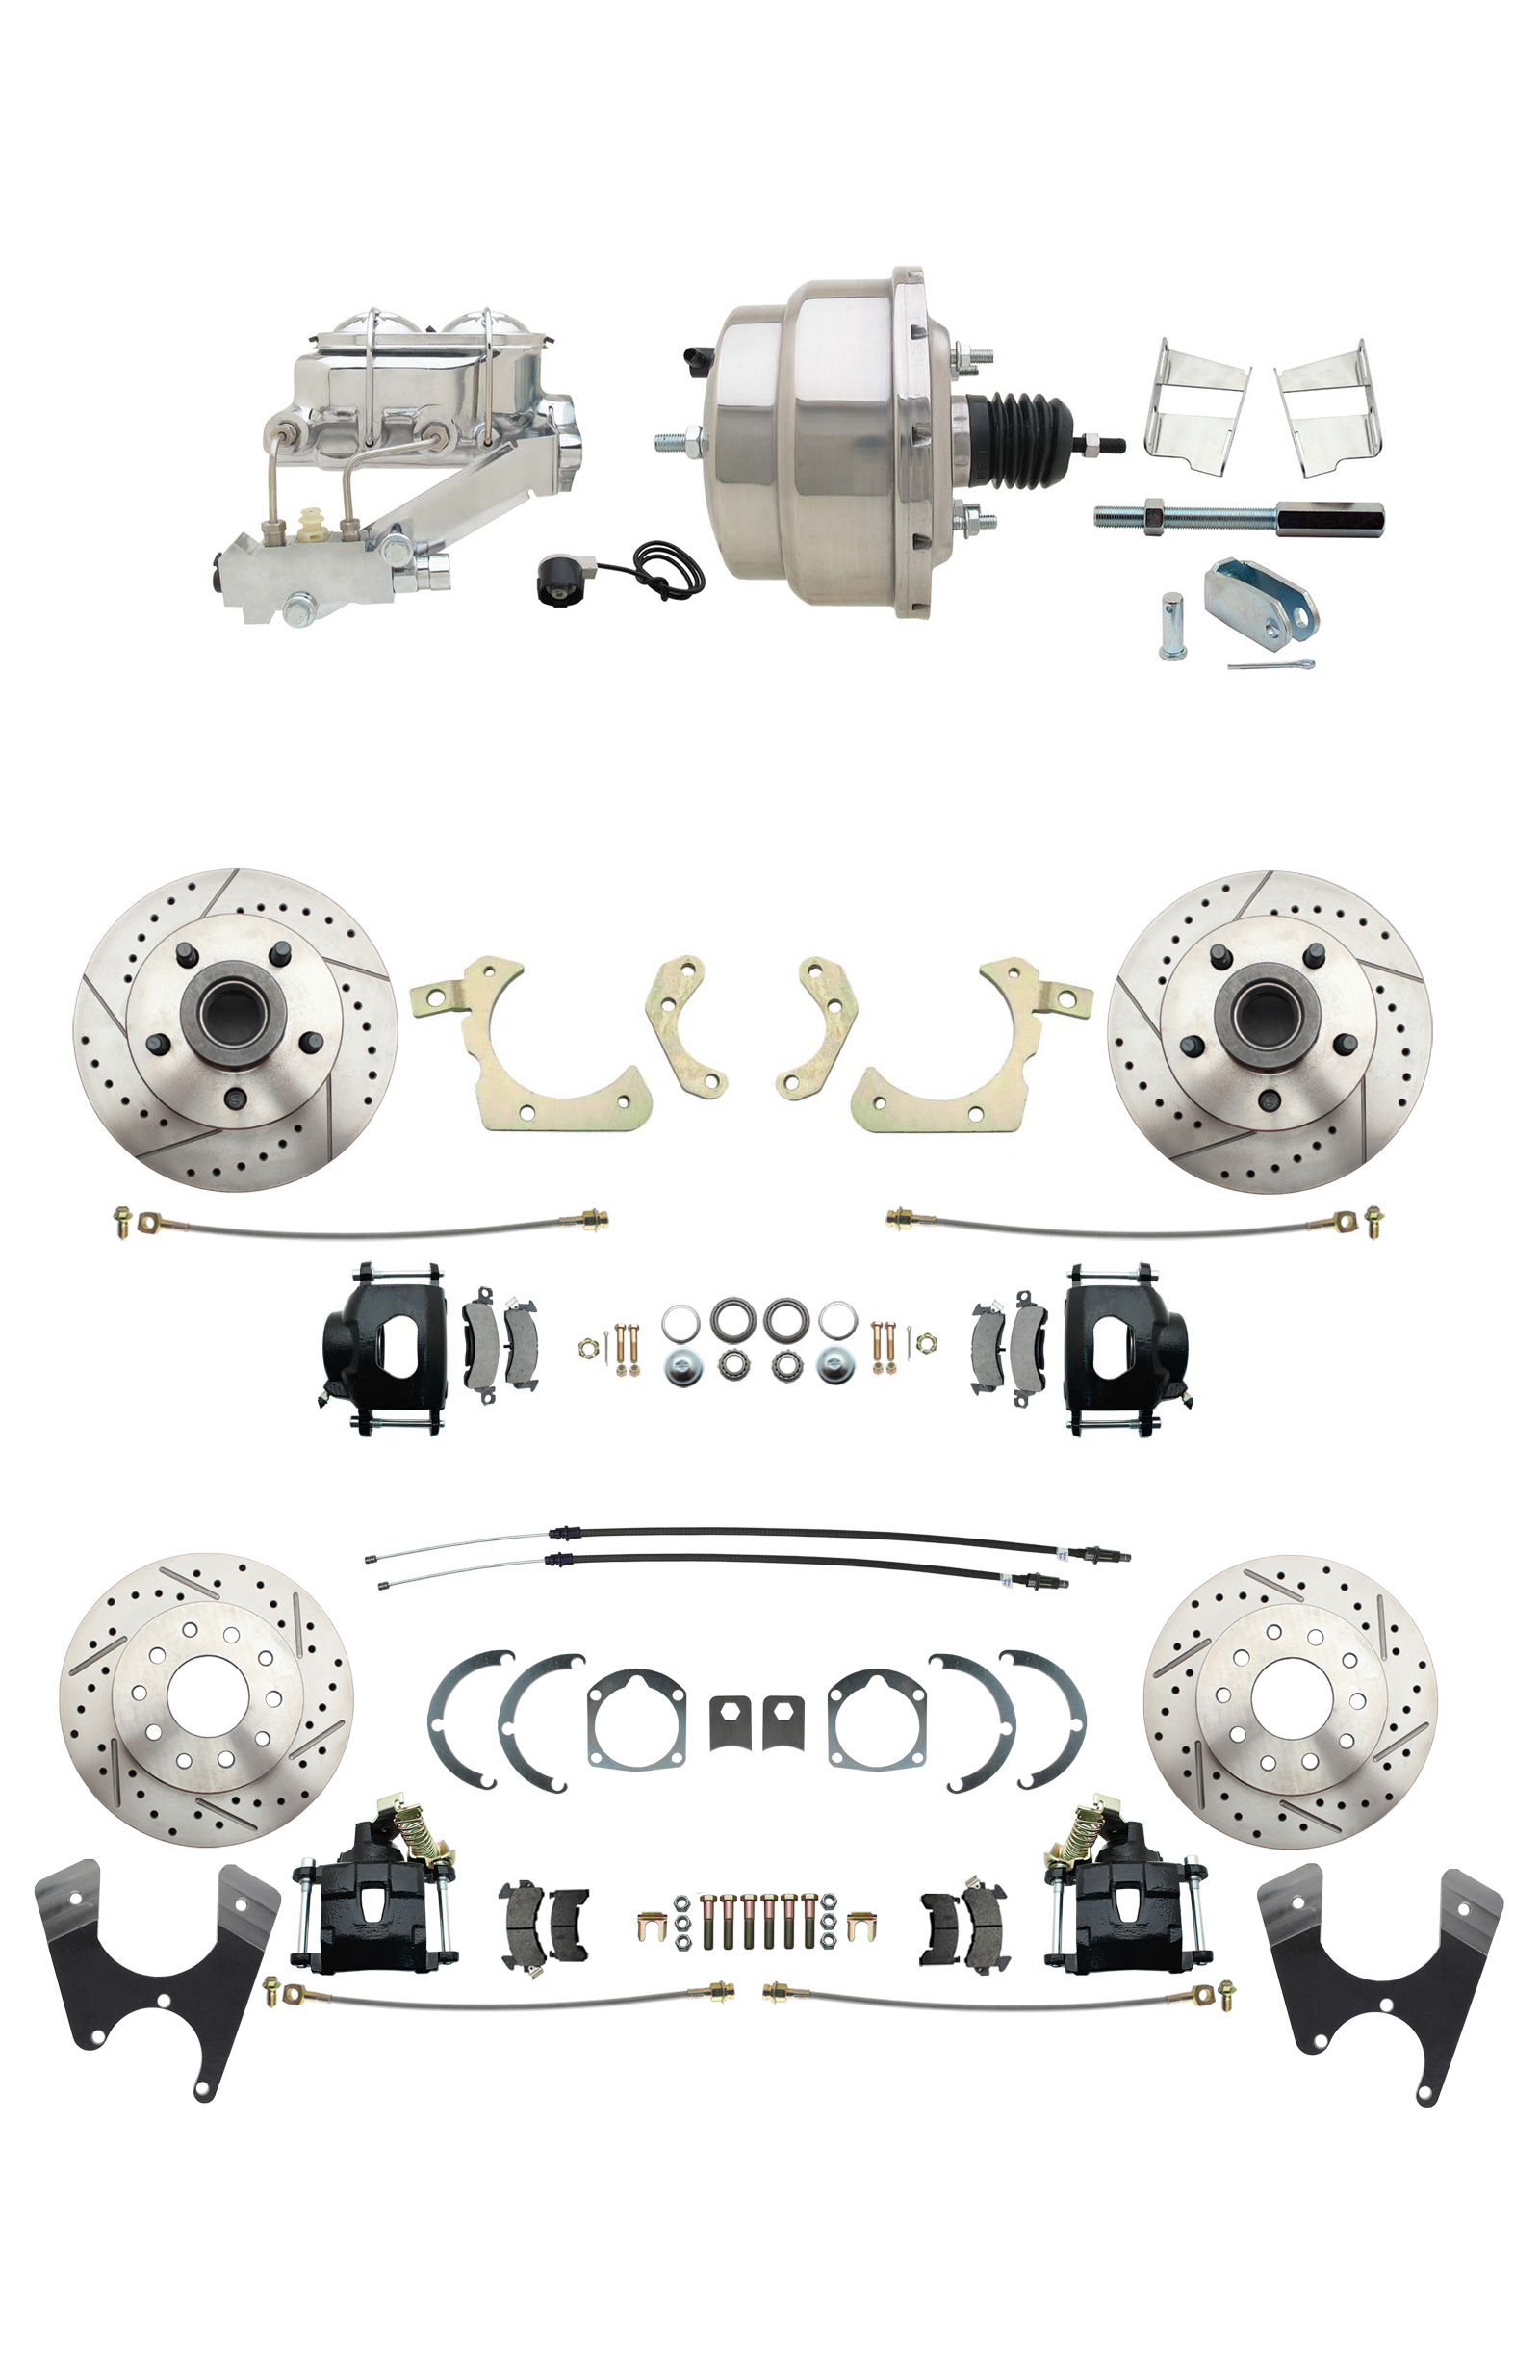 1959-1964 GM Full Size Front & Rear Power Disc Brake Kit Black Powder Coated Calipers Drilled/Slotted Rotors (Impala, Bel Air, Biscayne) & 8 Dual Stainless Steel Booster Conversion Kit W/ Chrome Master Cylinder Left Mou